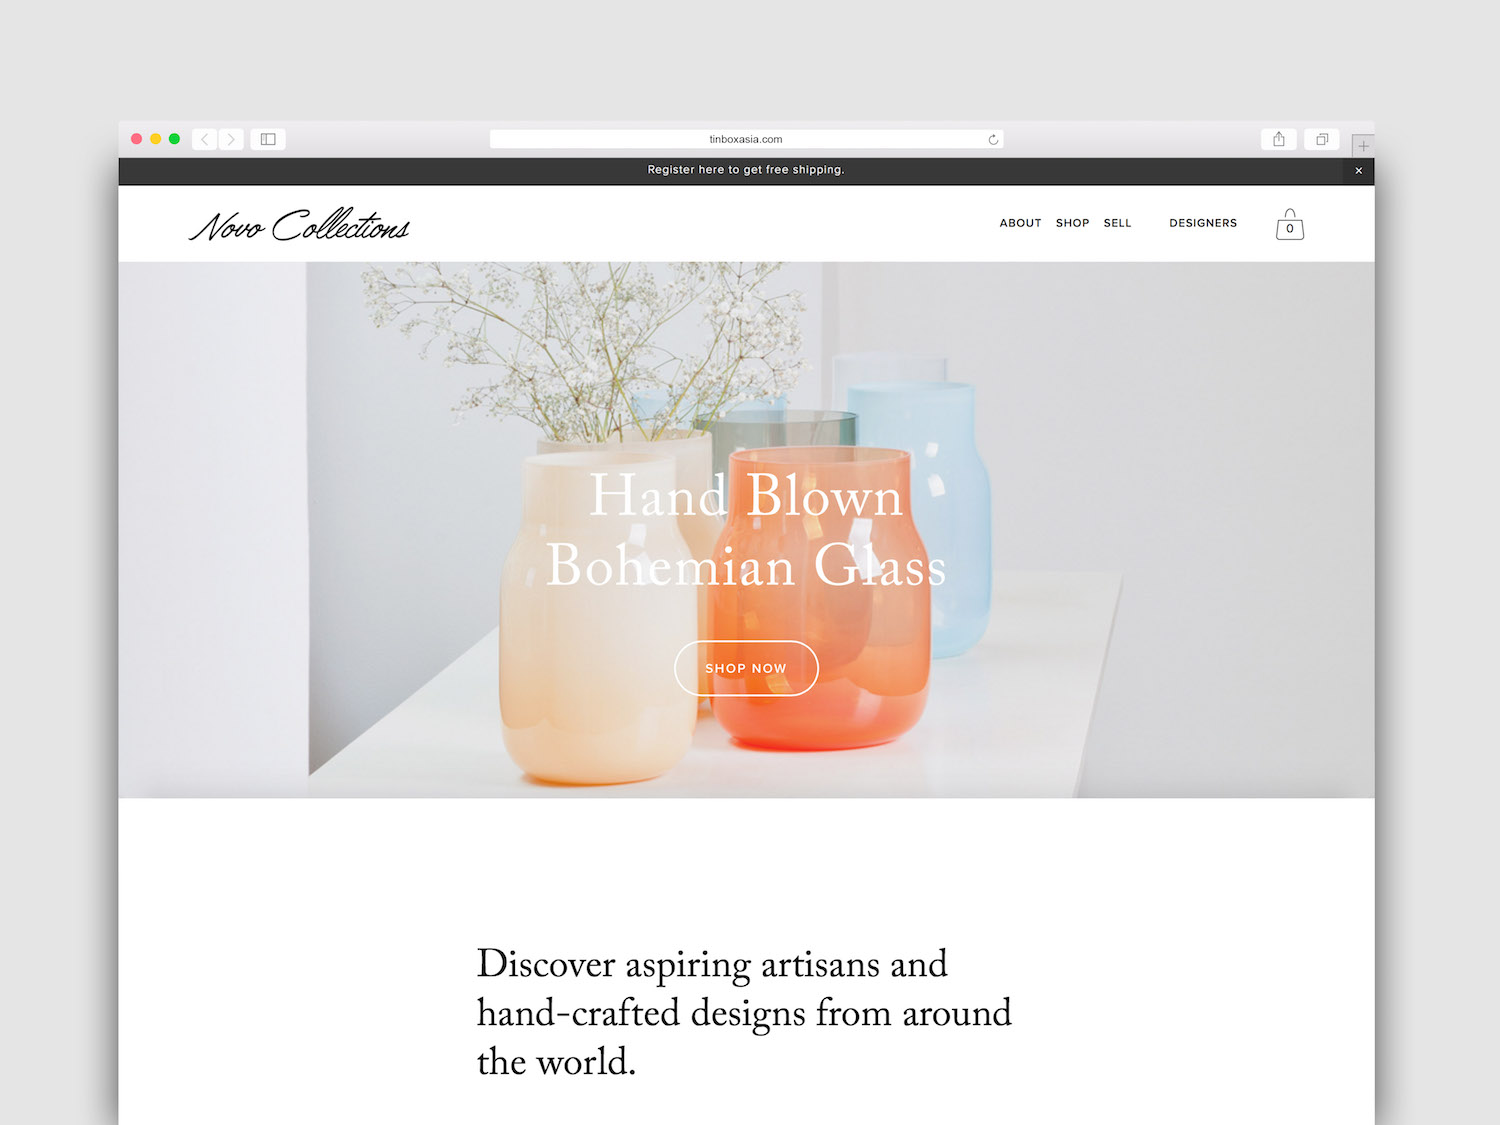 NOVO COLLECTIONS   Novo Collections is an online lifestyle store connecting independent artisans with customers around the world. The work included: logo design, brand strategy, brand voice, website and e-commerce design and creation, social media strategy.